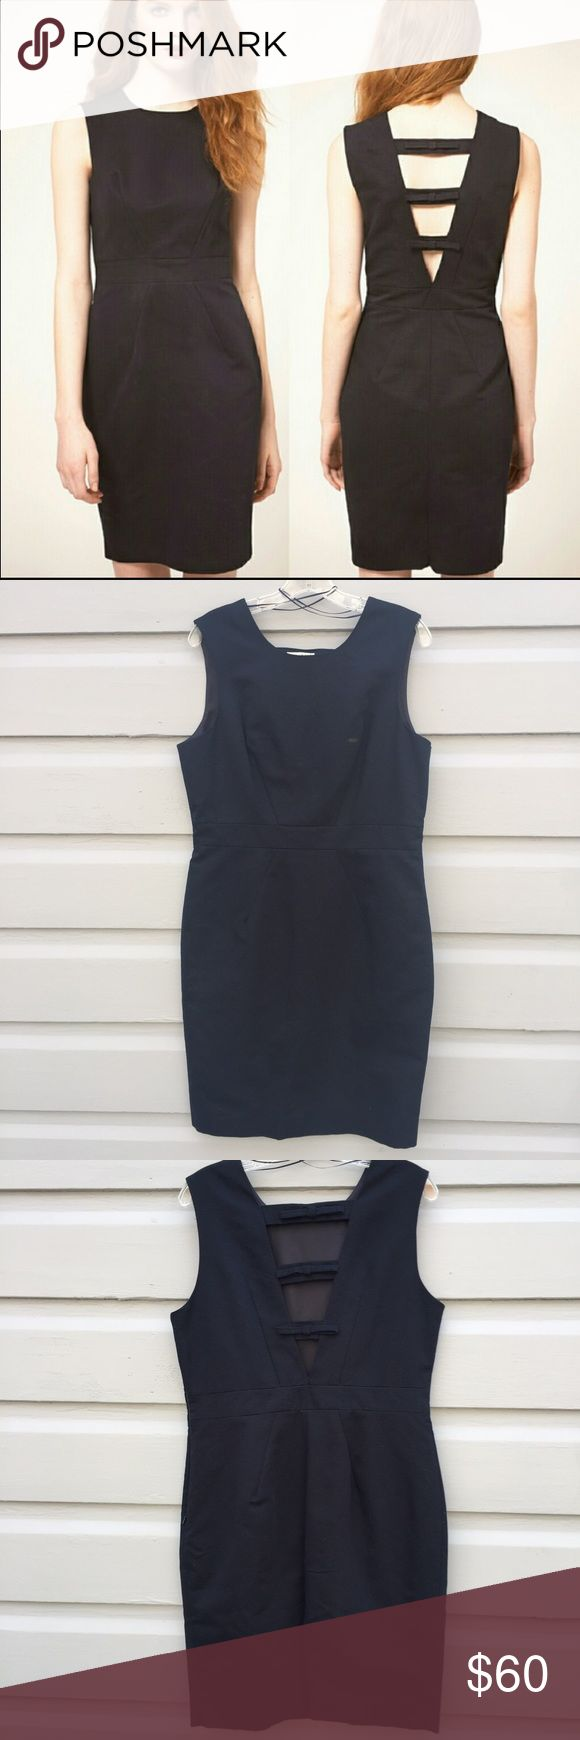 U.K. Whistles Nelly bow back dress Size large (size tag missing but roughly size 8-10) classic navy sheath dress. Back is exquisite with bow detail, sleeveless, fully lined, side zip. Nearly new condition. A favorite of Kate Middleton the style is effortless and timeless. Whistles Dresses Midi